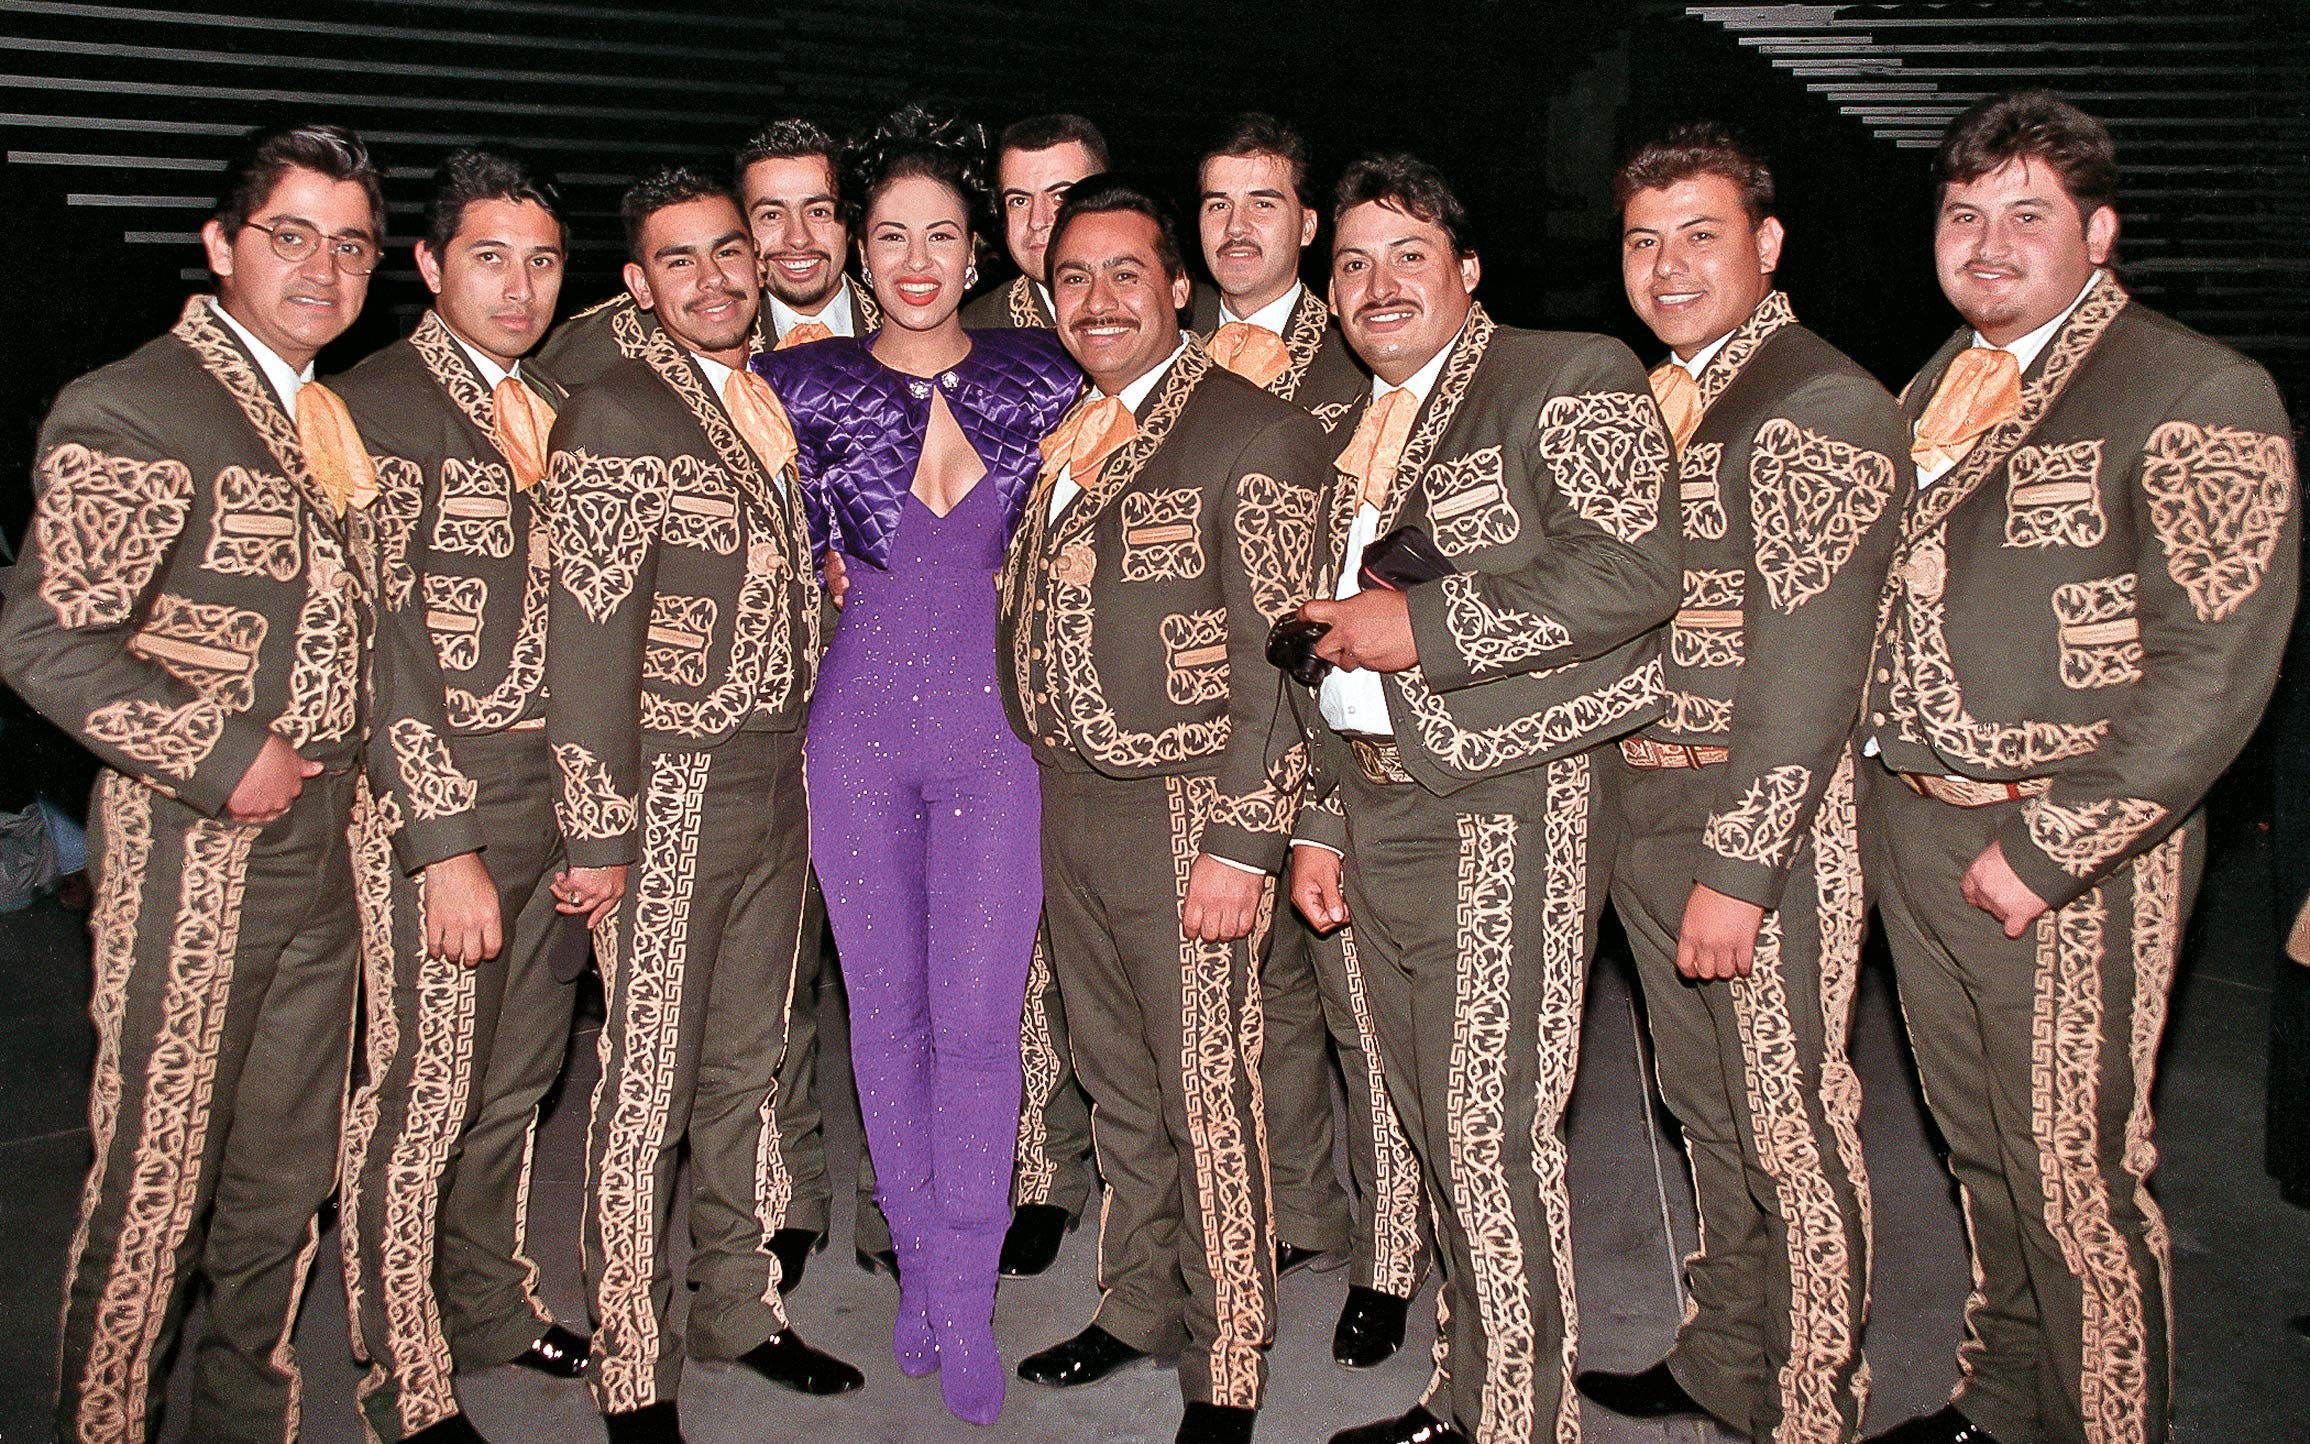 Selena, in a purple jumpsuit and quilted bolero jacket, with the mariachi Los Caporales, at the Tejano Music Awards in San Antonio, on February 11, 1995